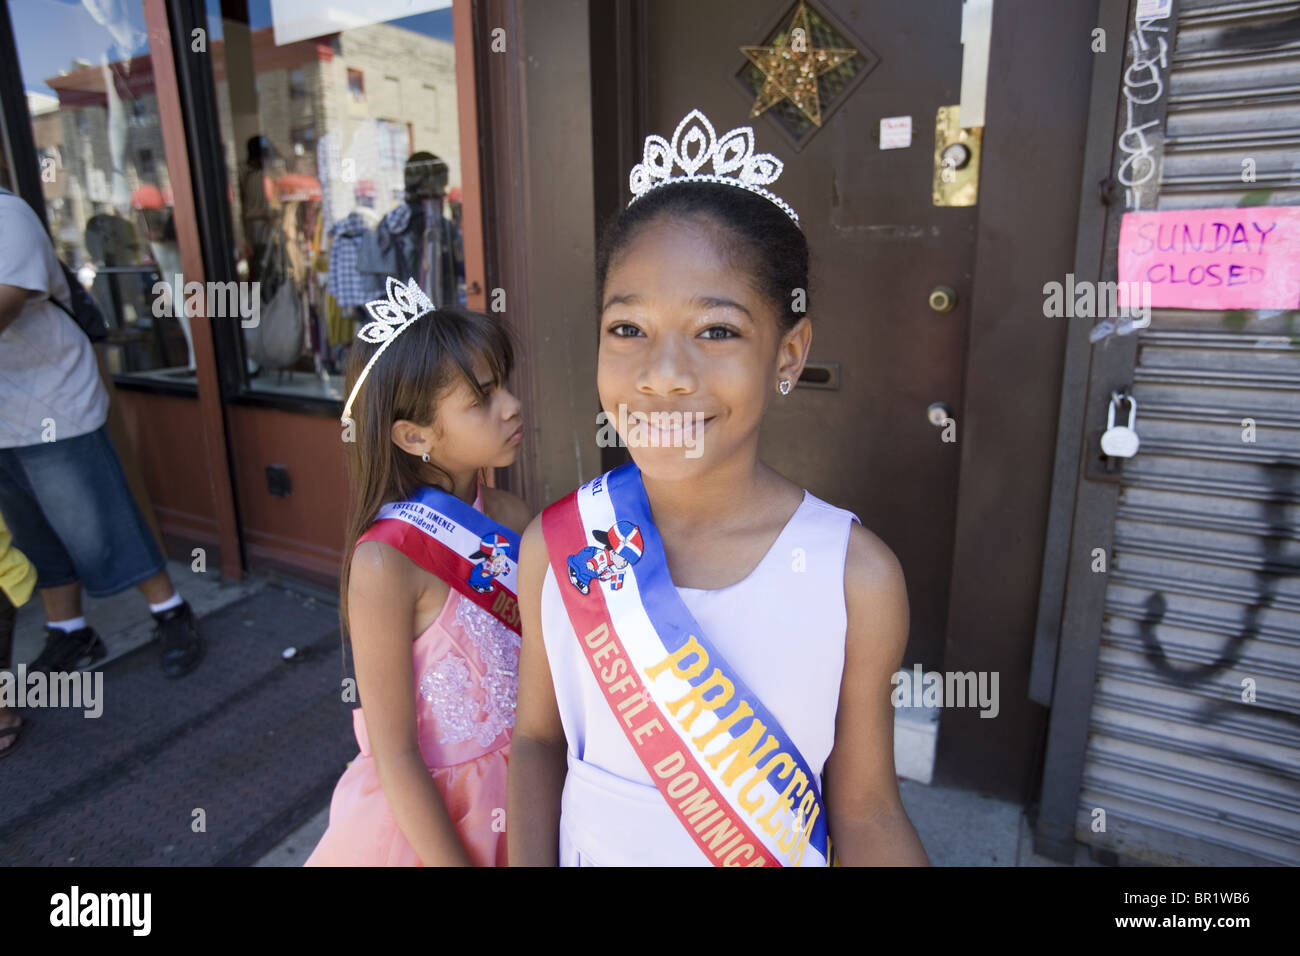 Official princesses at the 2010 Dominican Parade in Brooklyn, NY. - Stock Image